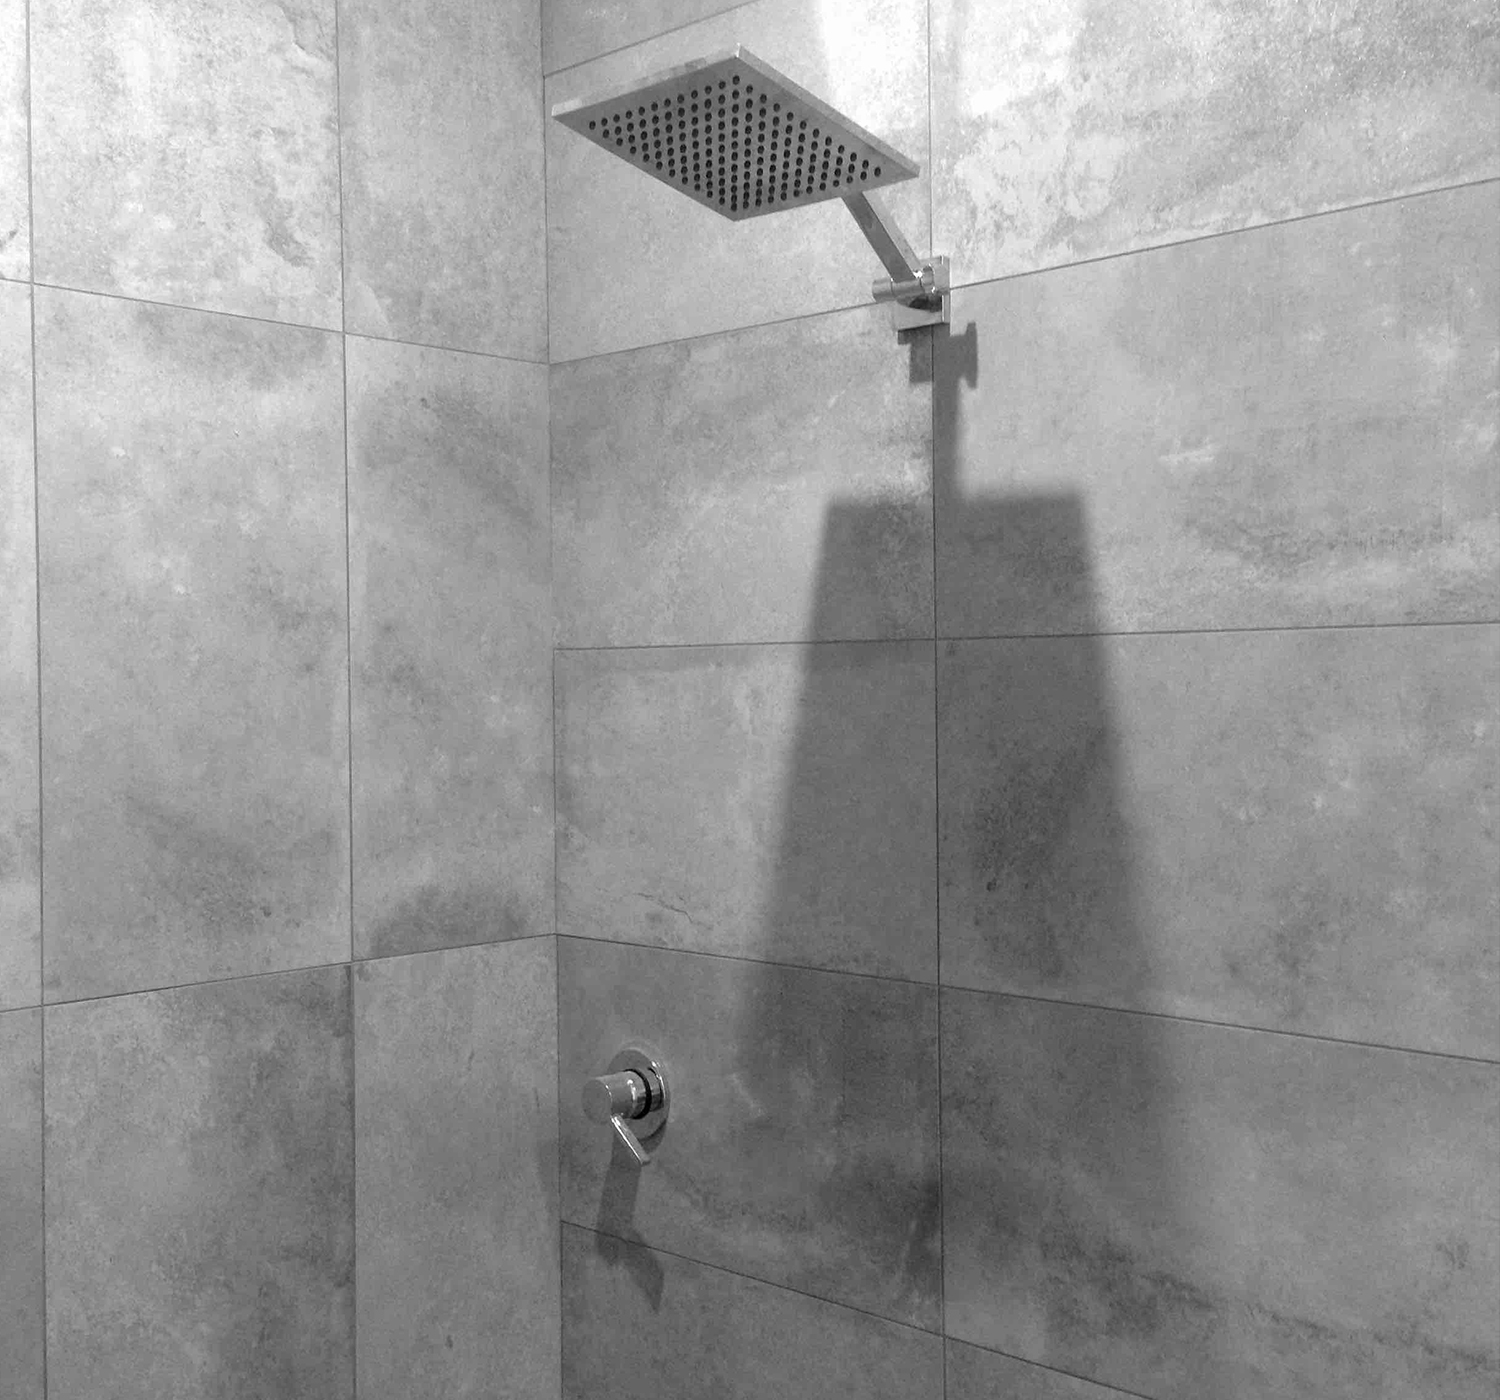 shower before a float tank session